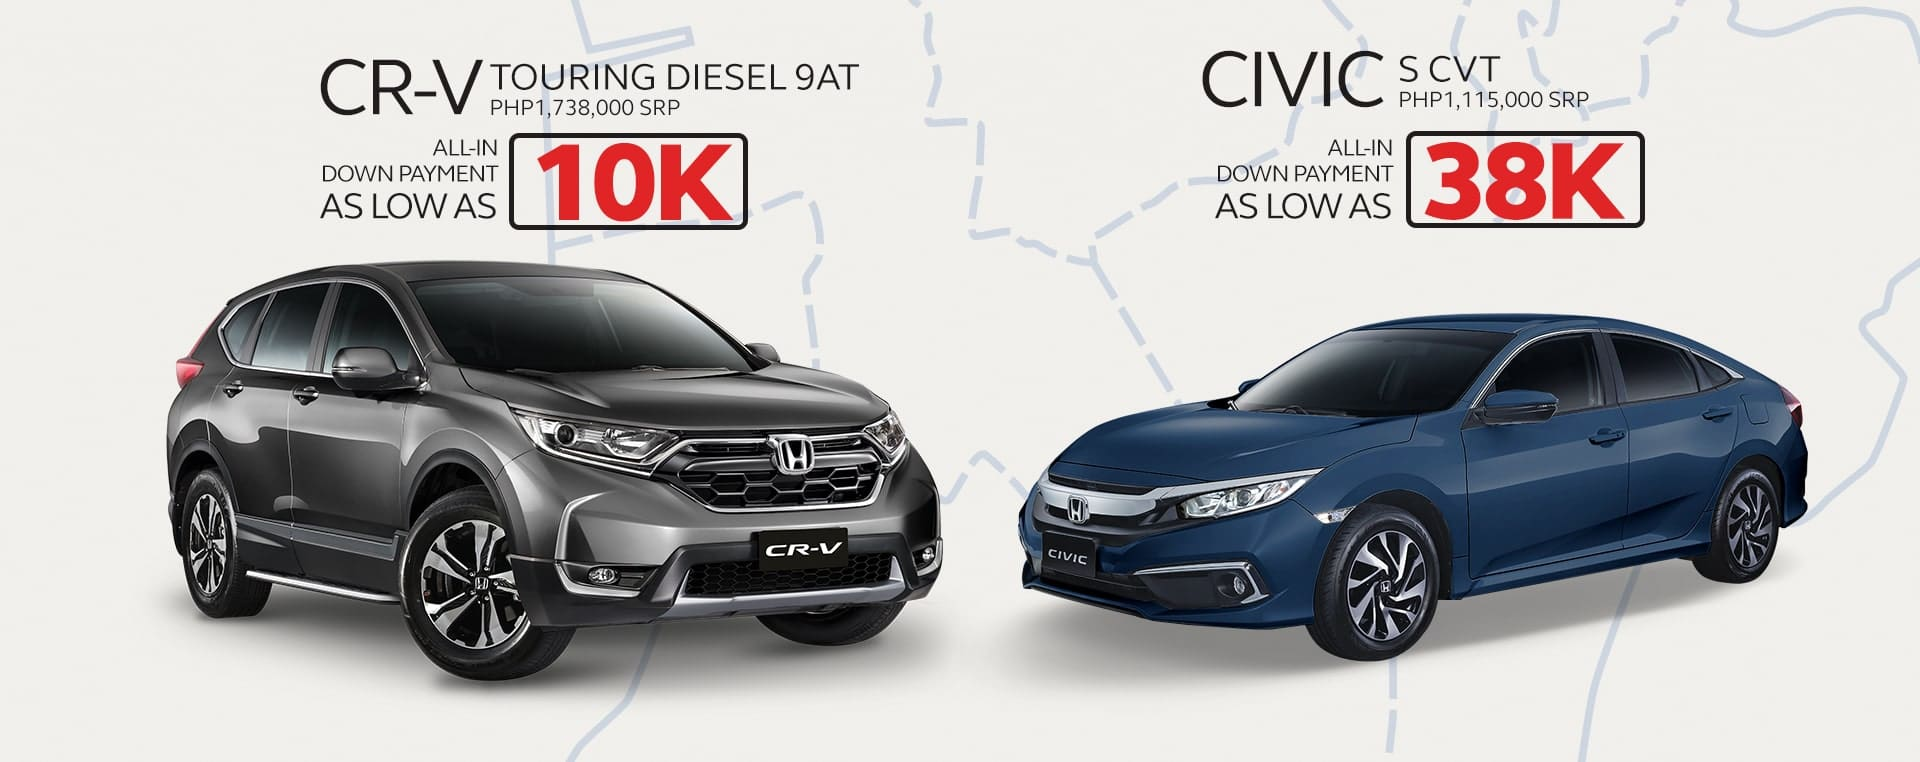 Honda Cars PH Announces Exclusive Deals for New Civic 1.8 S CVT, CR-V Touring Diesel 9AT